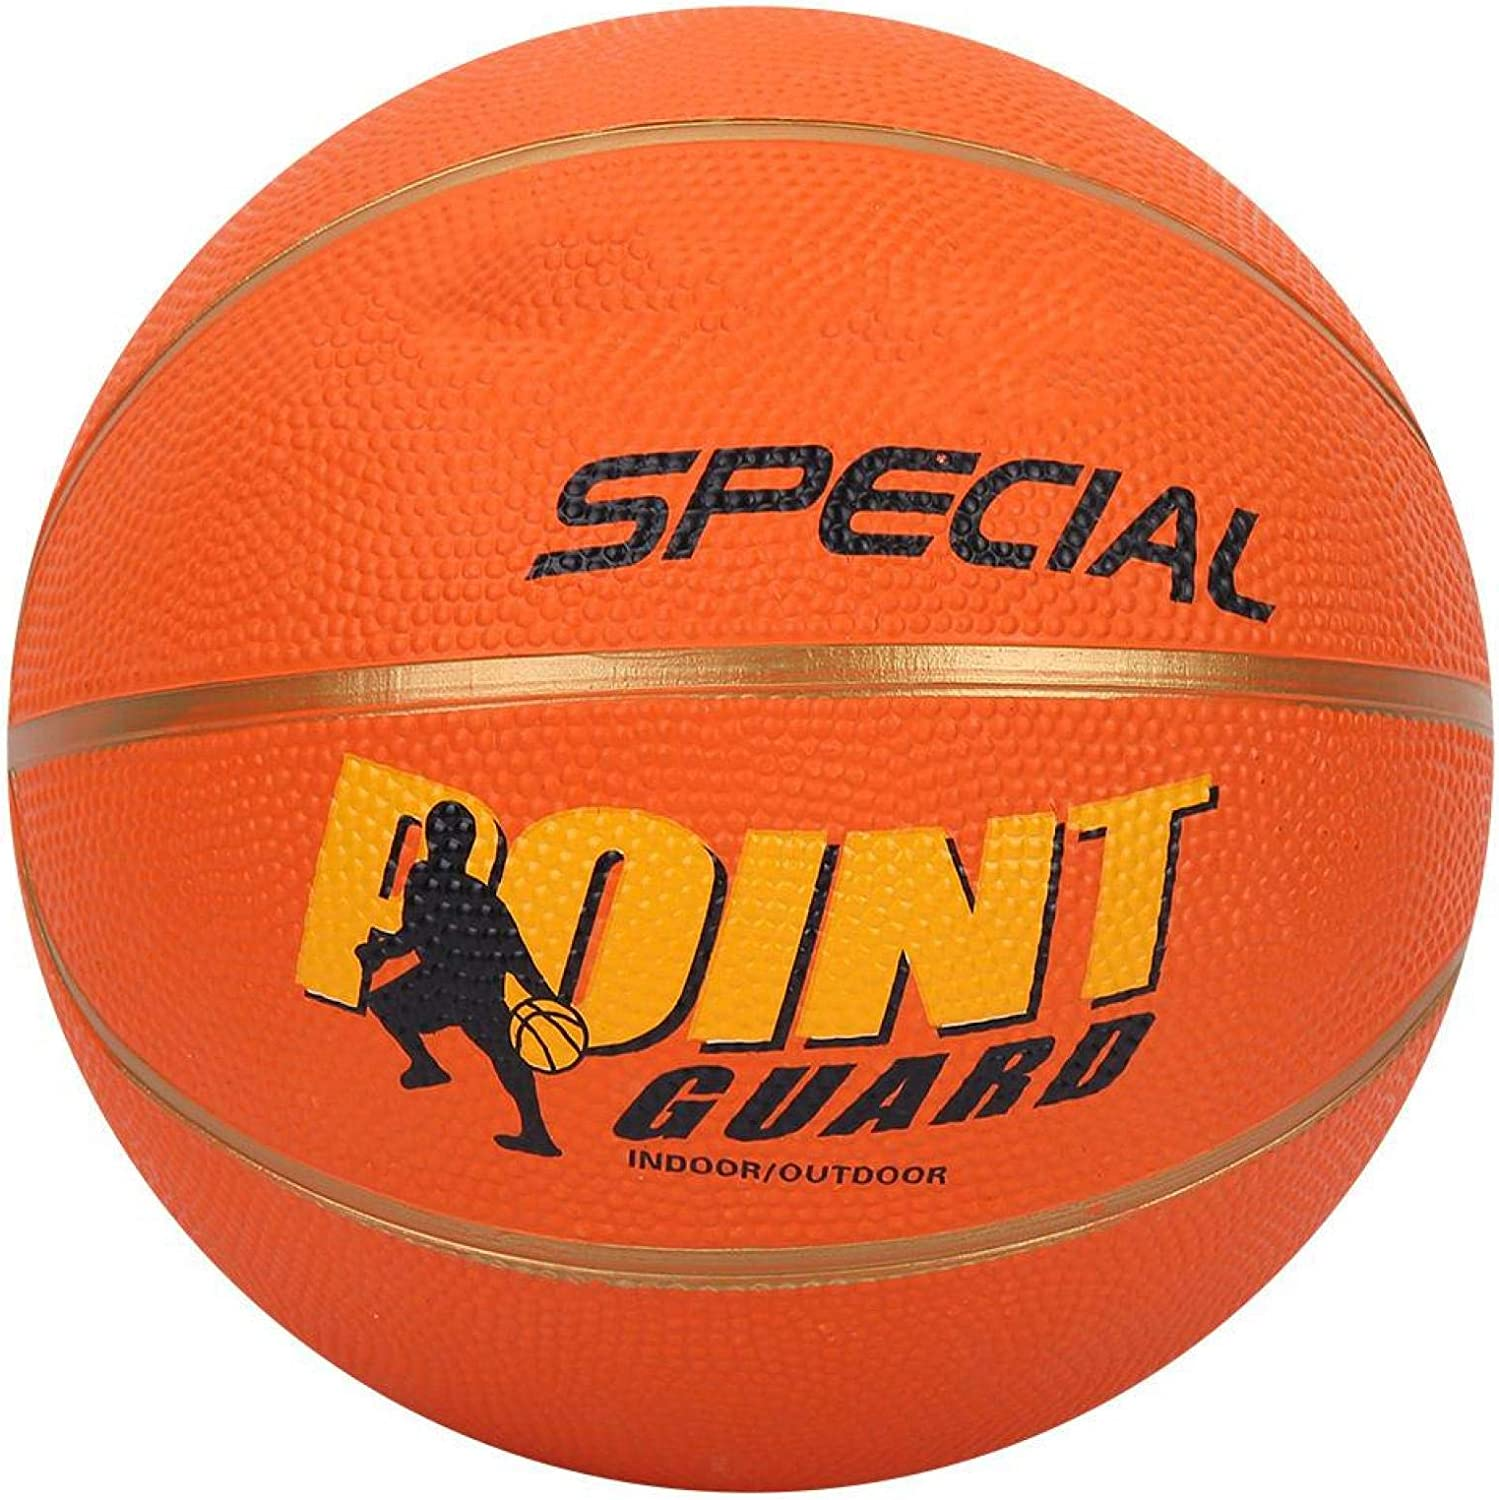 PBOHUZ Excellence Basketball Size 5 Rubber Training Sport outlet Children Student